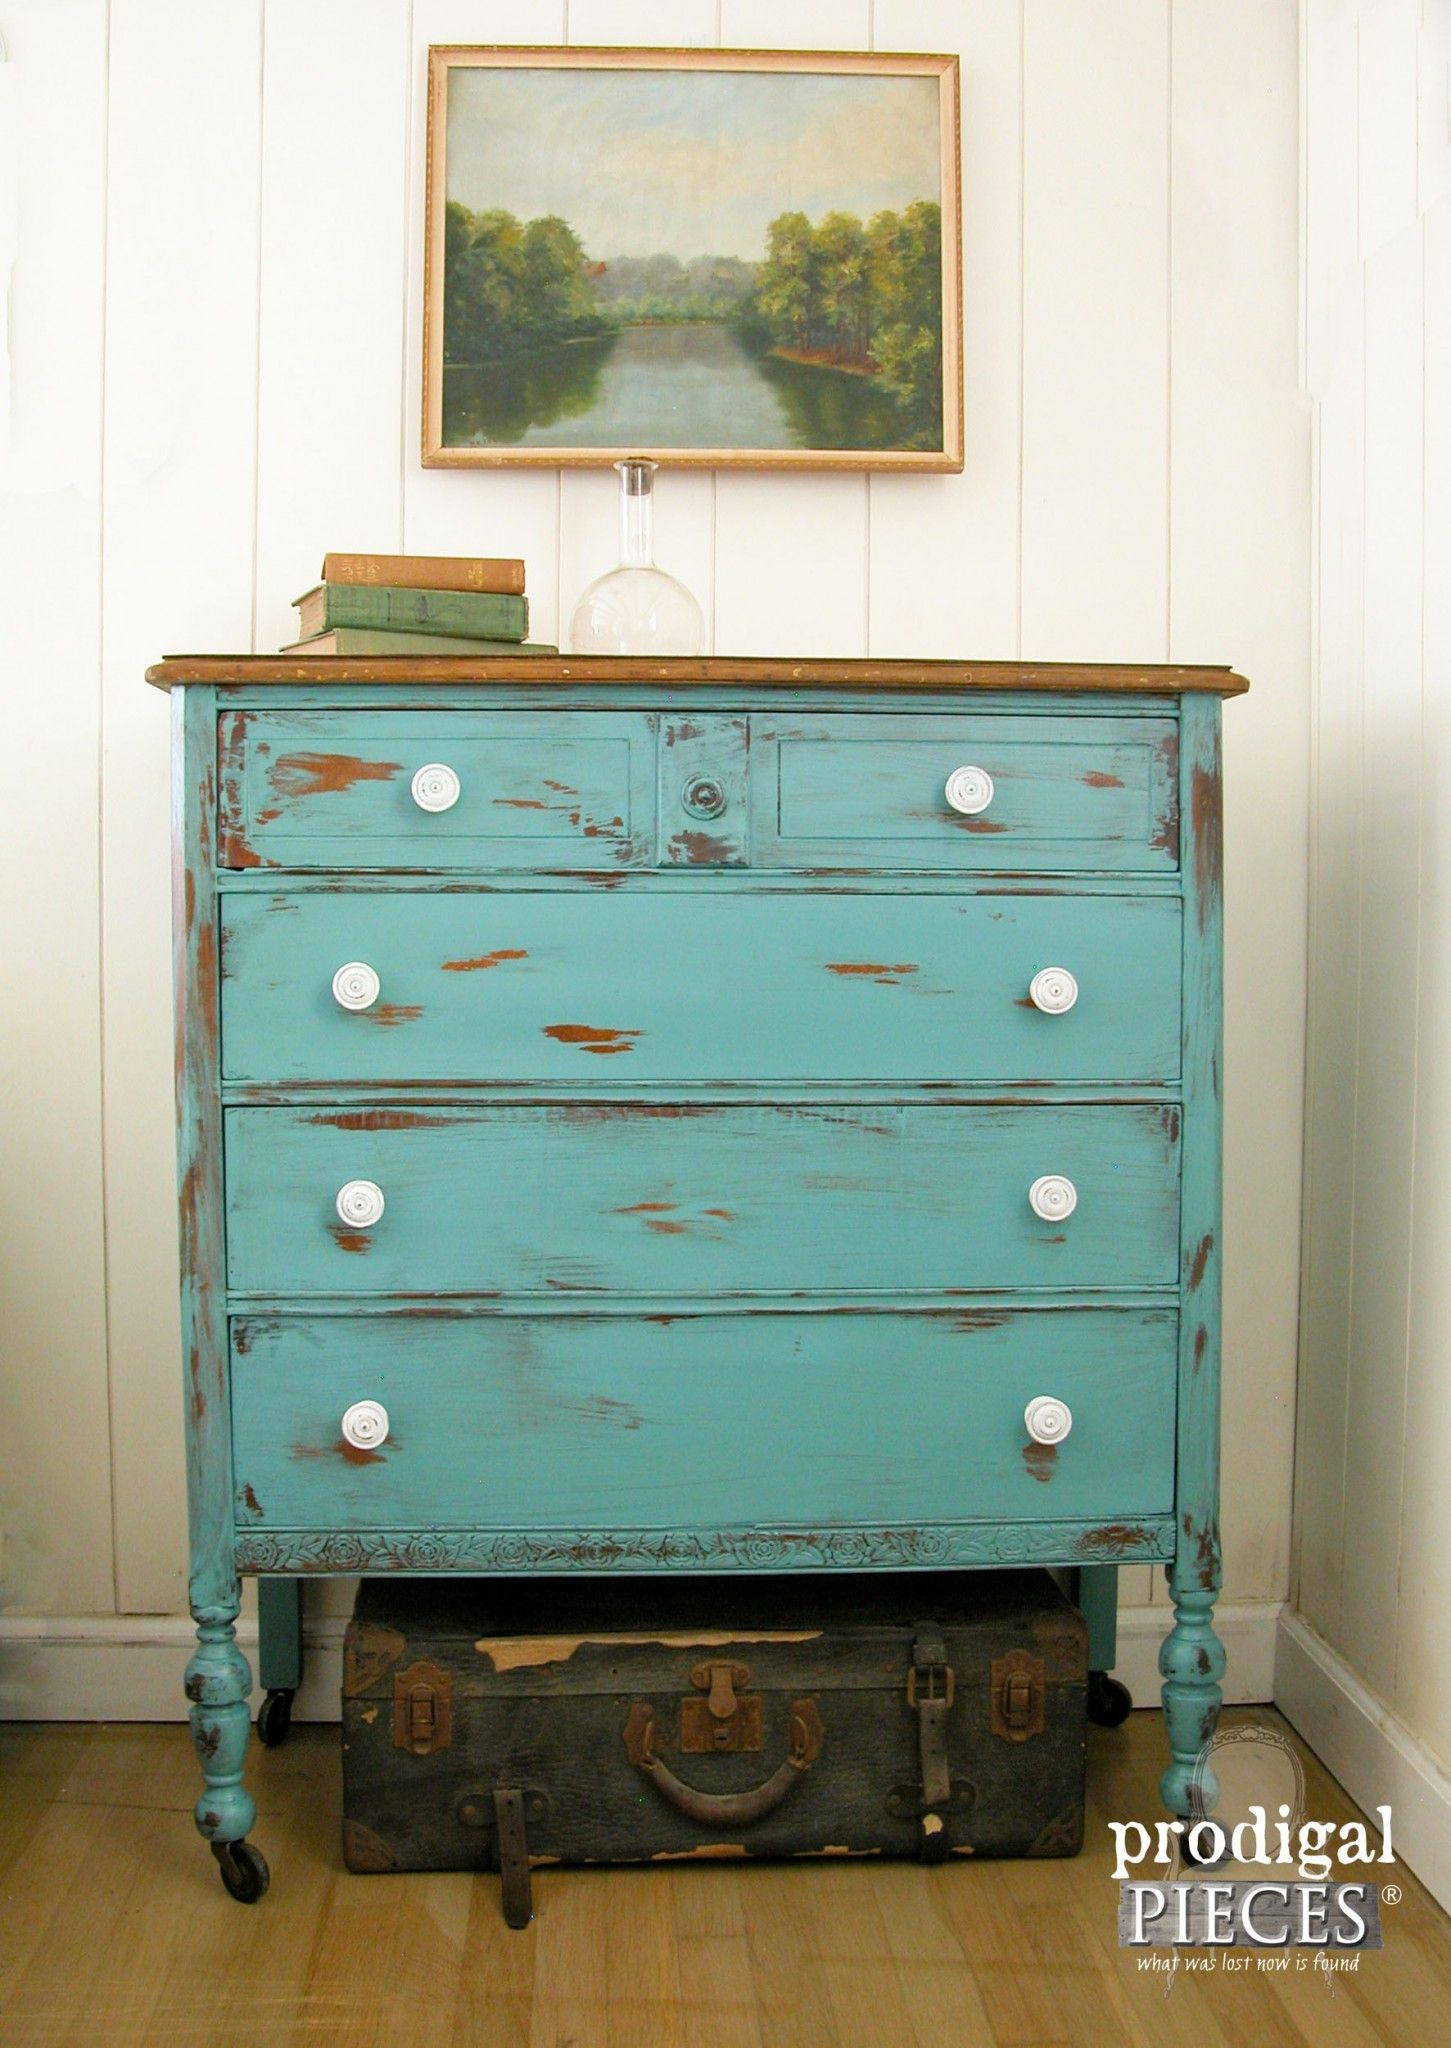 Get The Look Of Distressed Paint With Petroleum Jelly Aqua Teal Chest Drawers By Prodigal Pieces Www Prodigalpieces